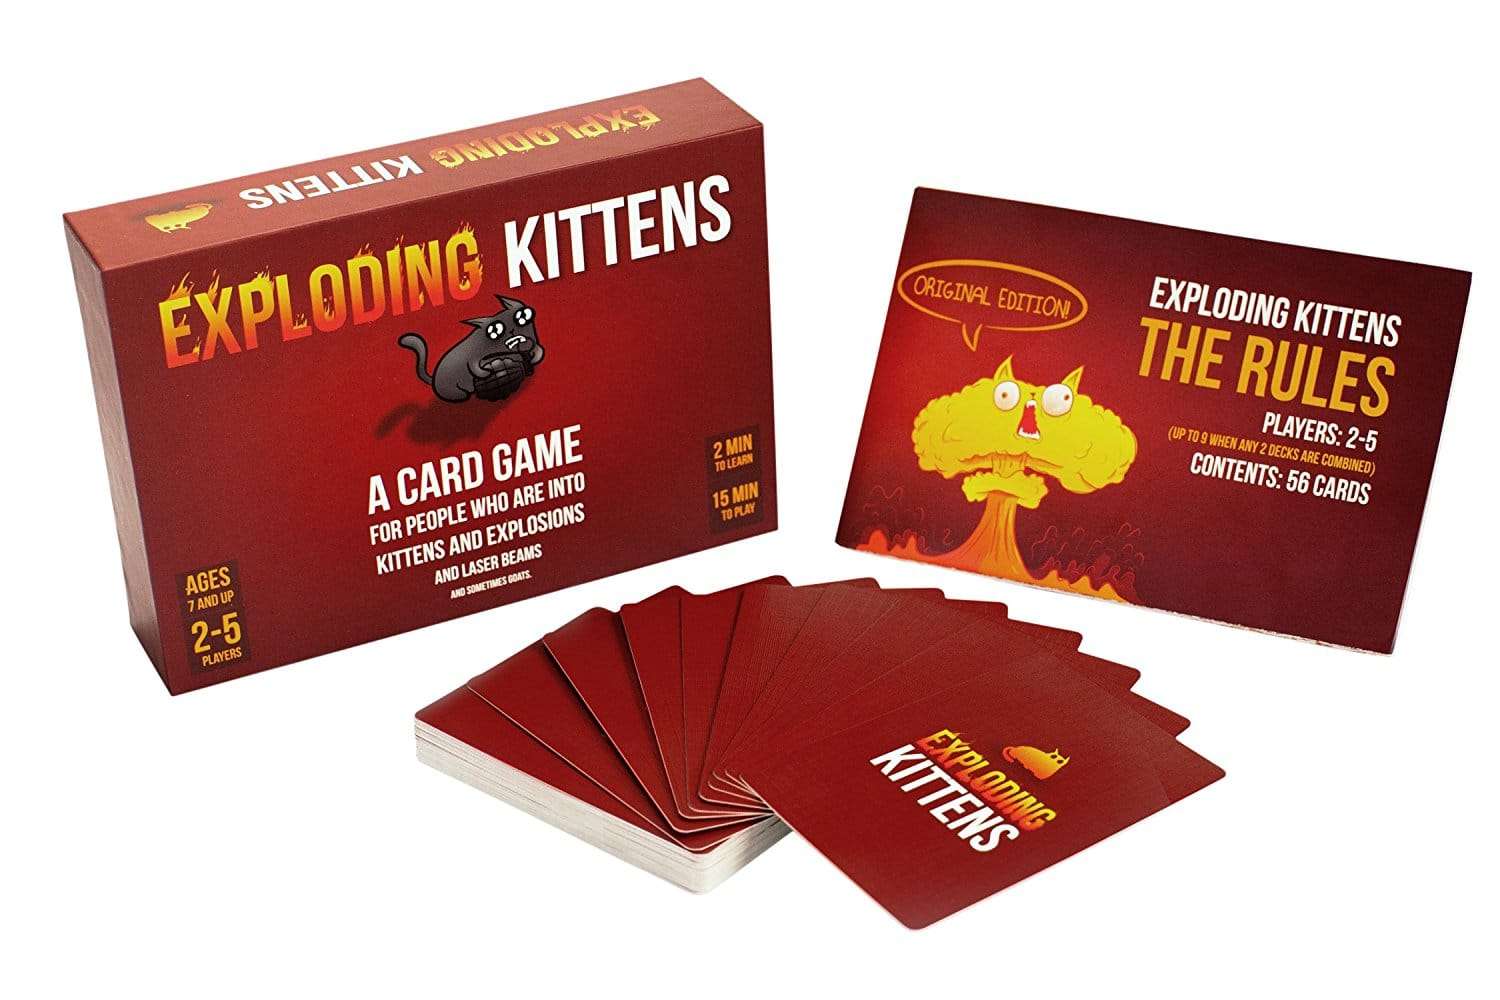 Exploding Kittens: A Card Game About Kittens and Explosions and Sometimes Goats $9.99 + $5 Flat-Rate S/H via Woot